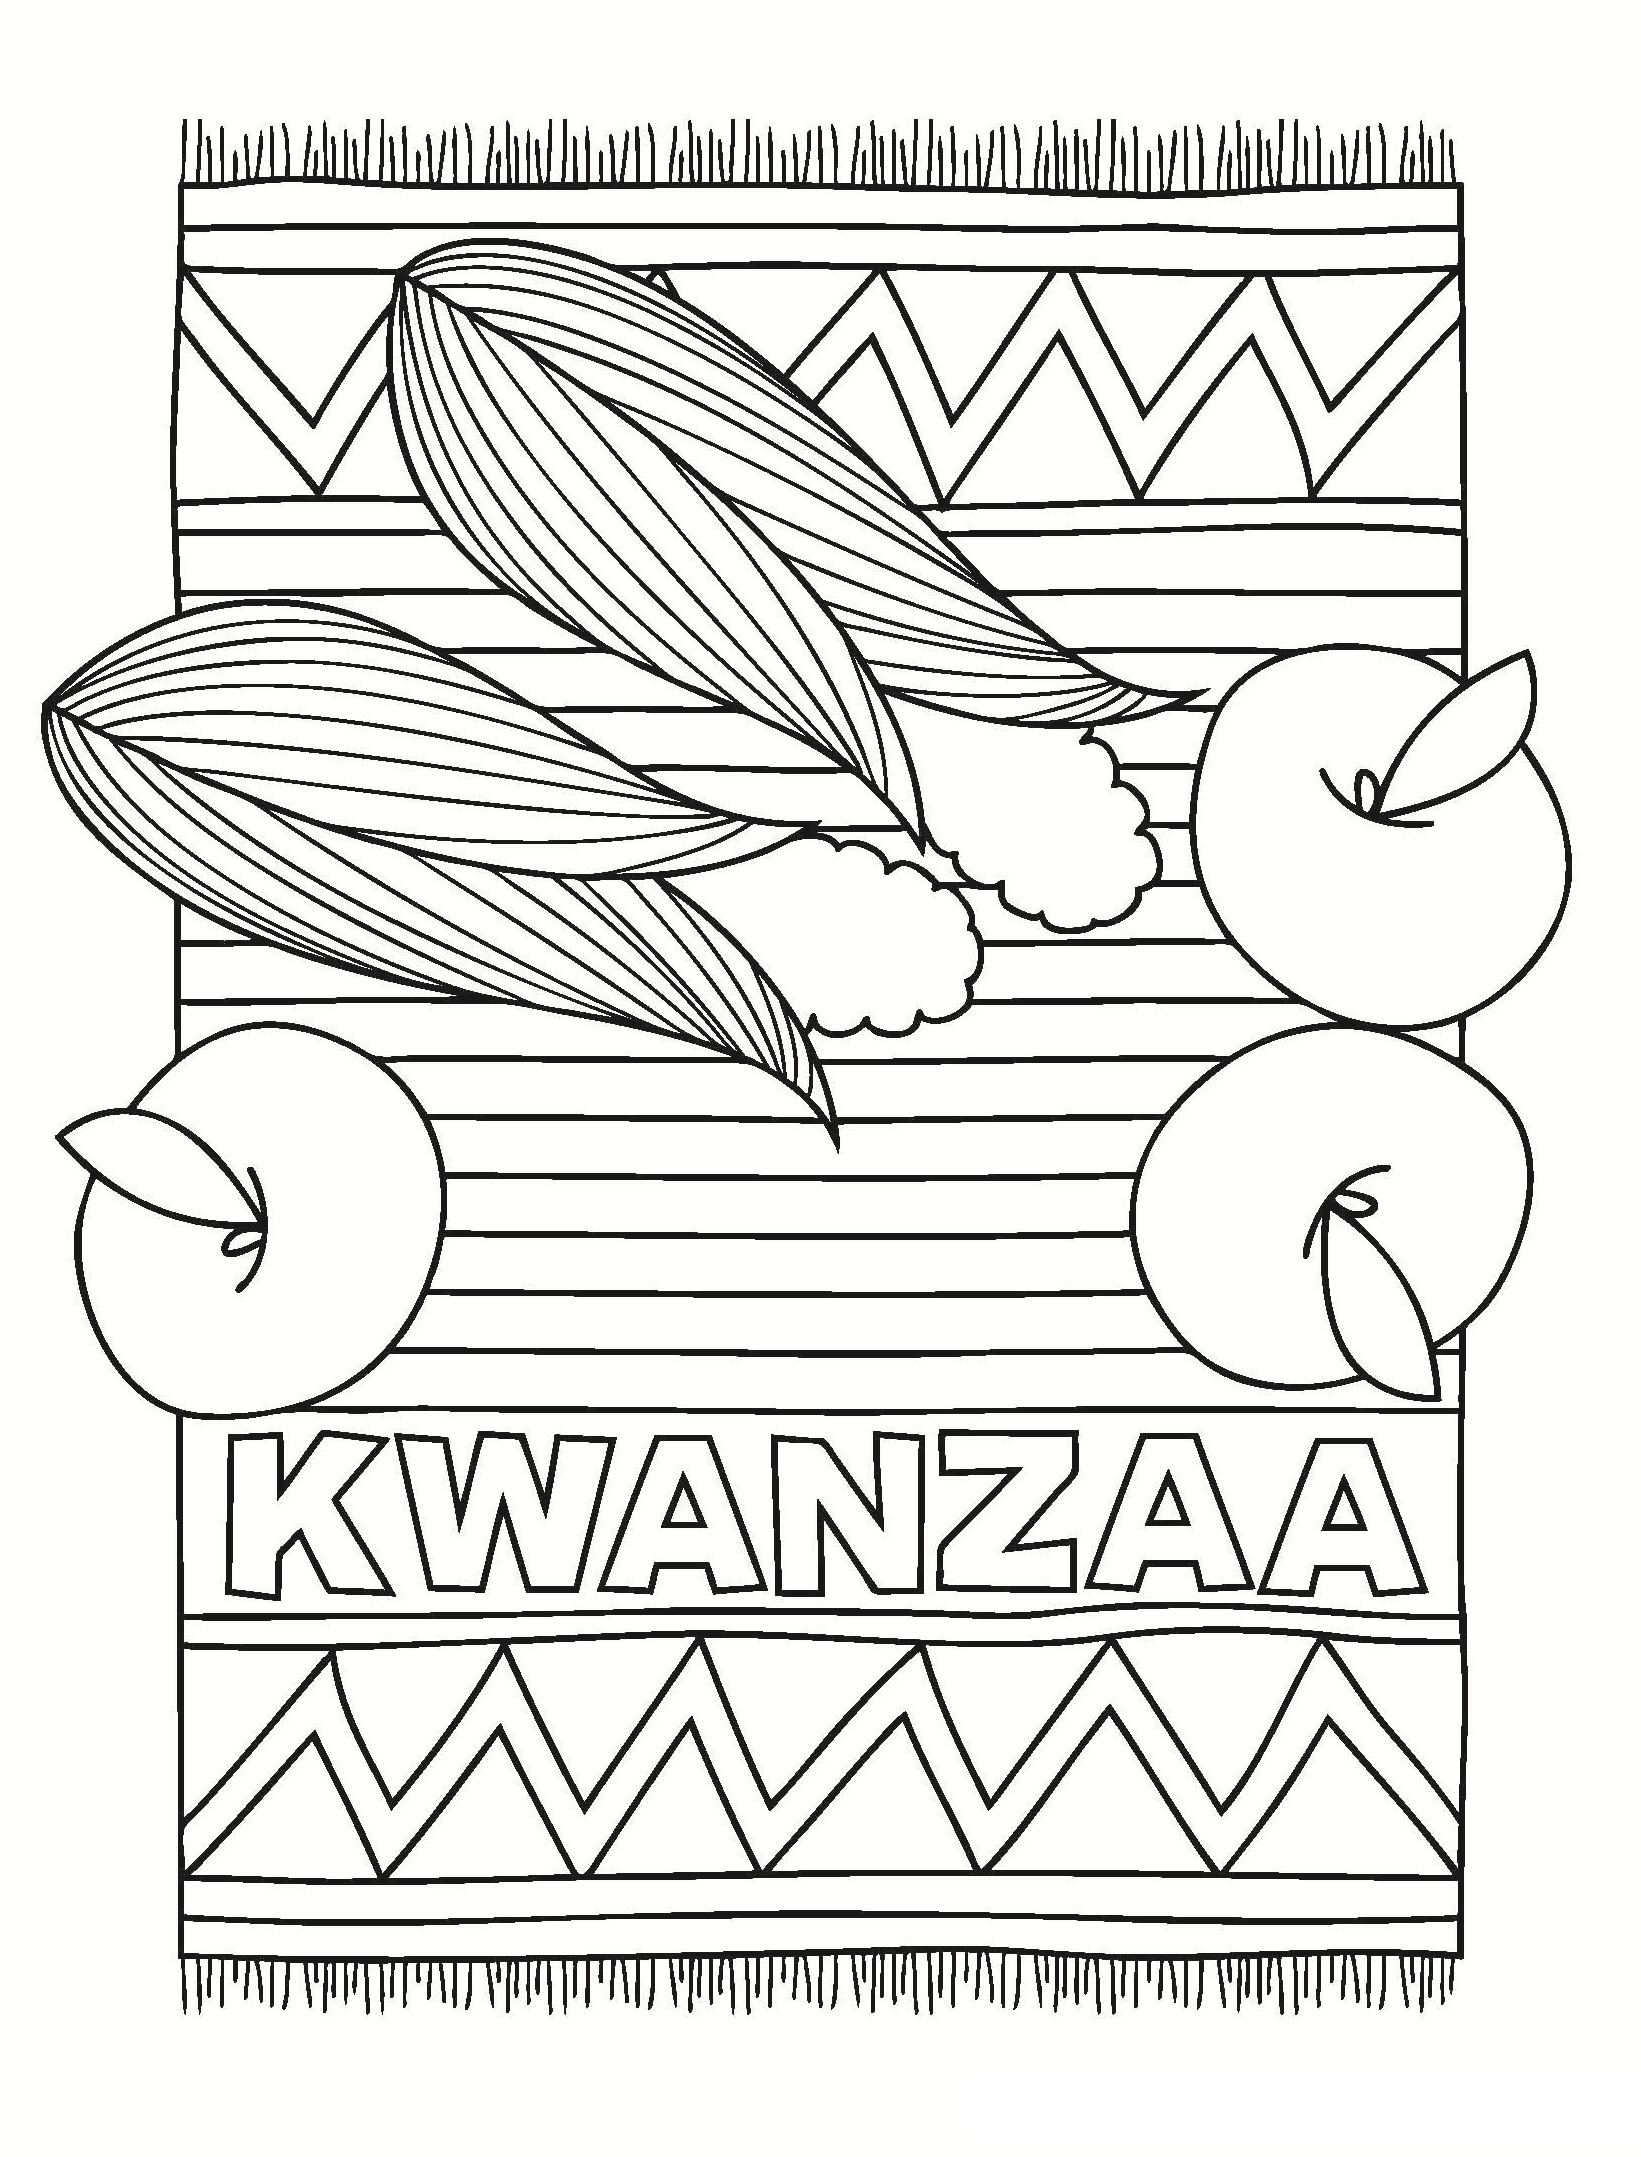 Kwanzaa Rug And Fruits